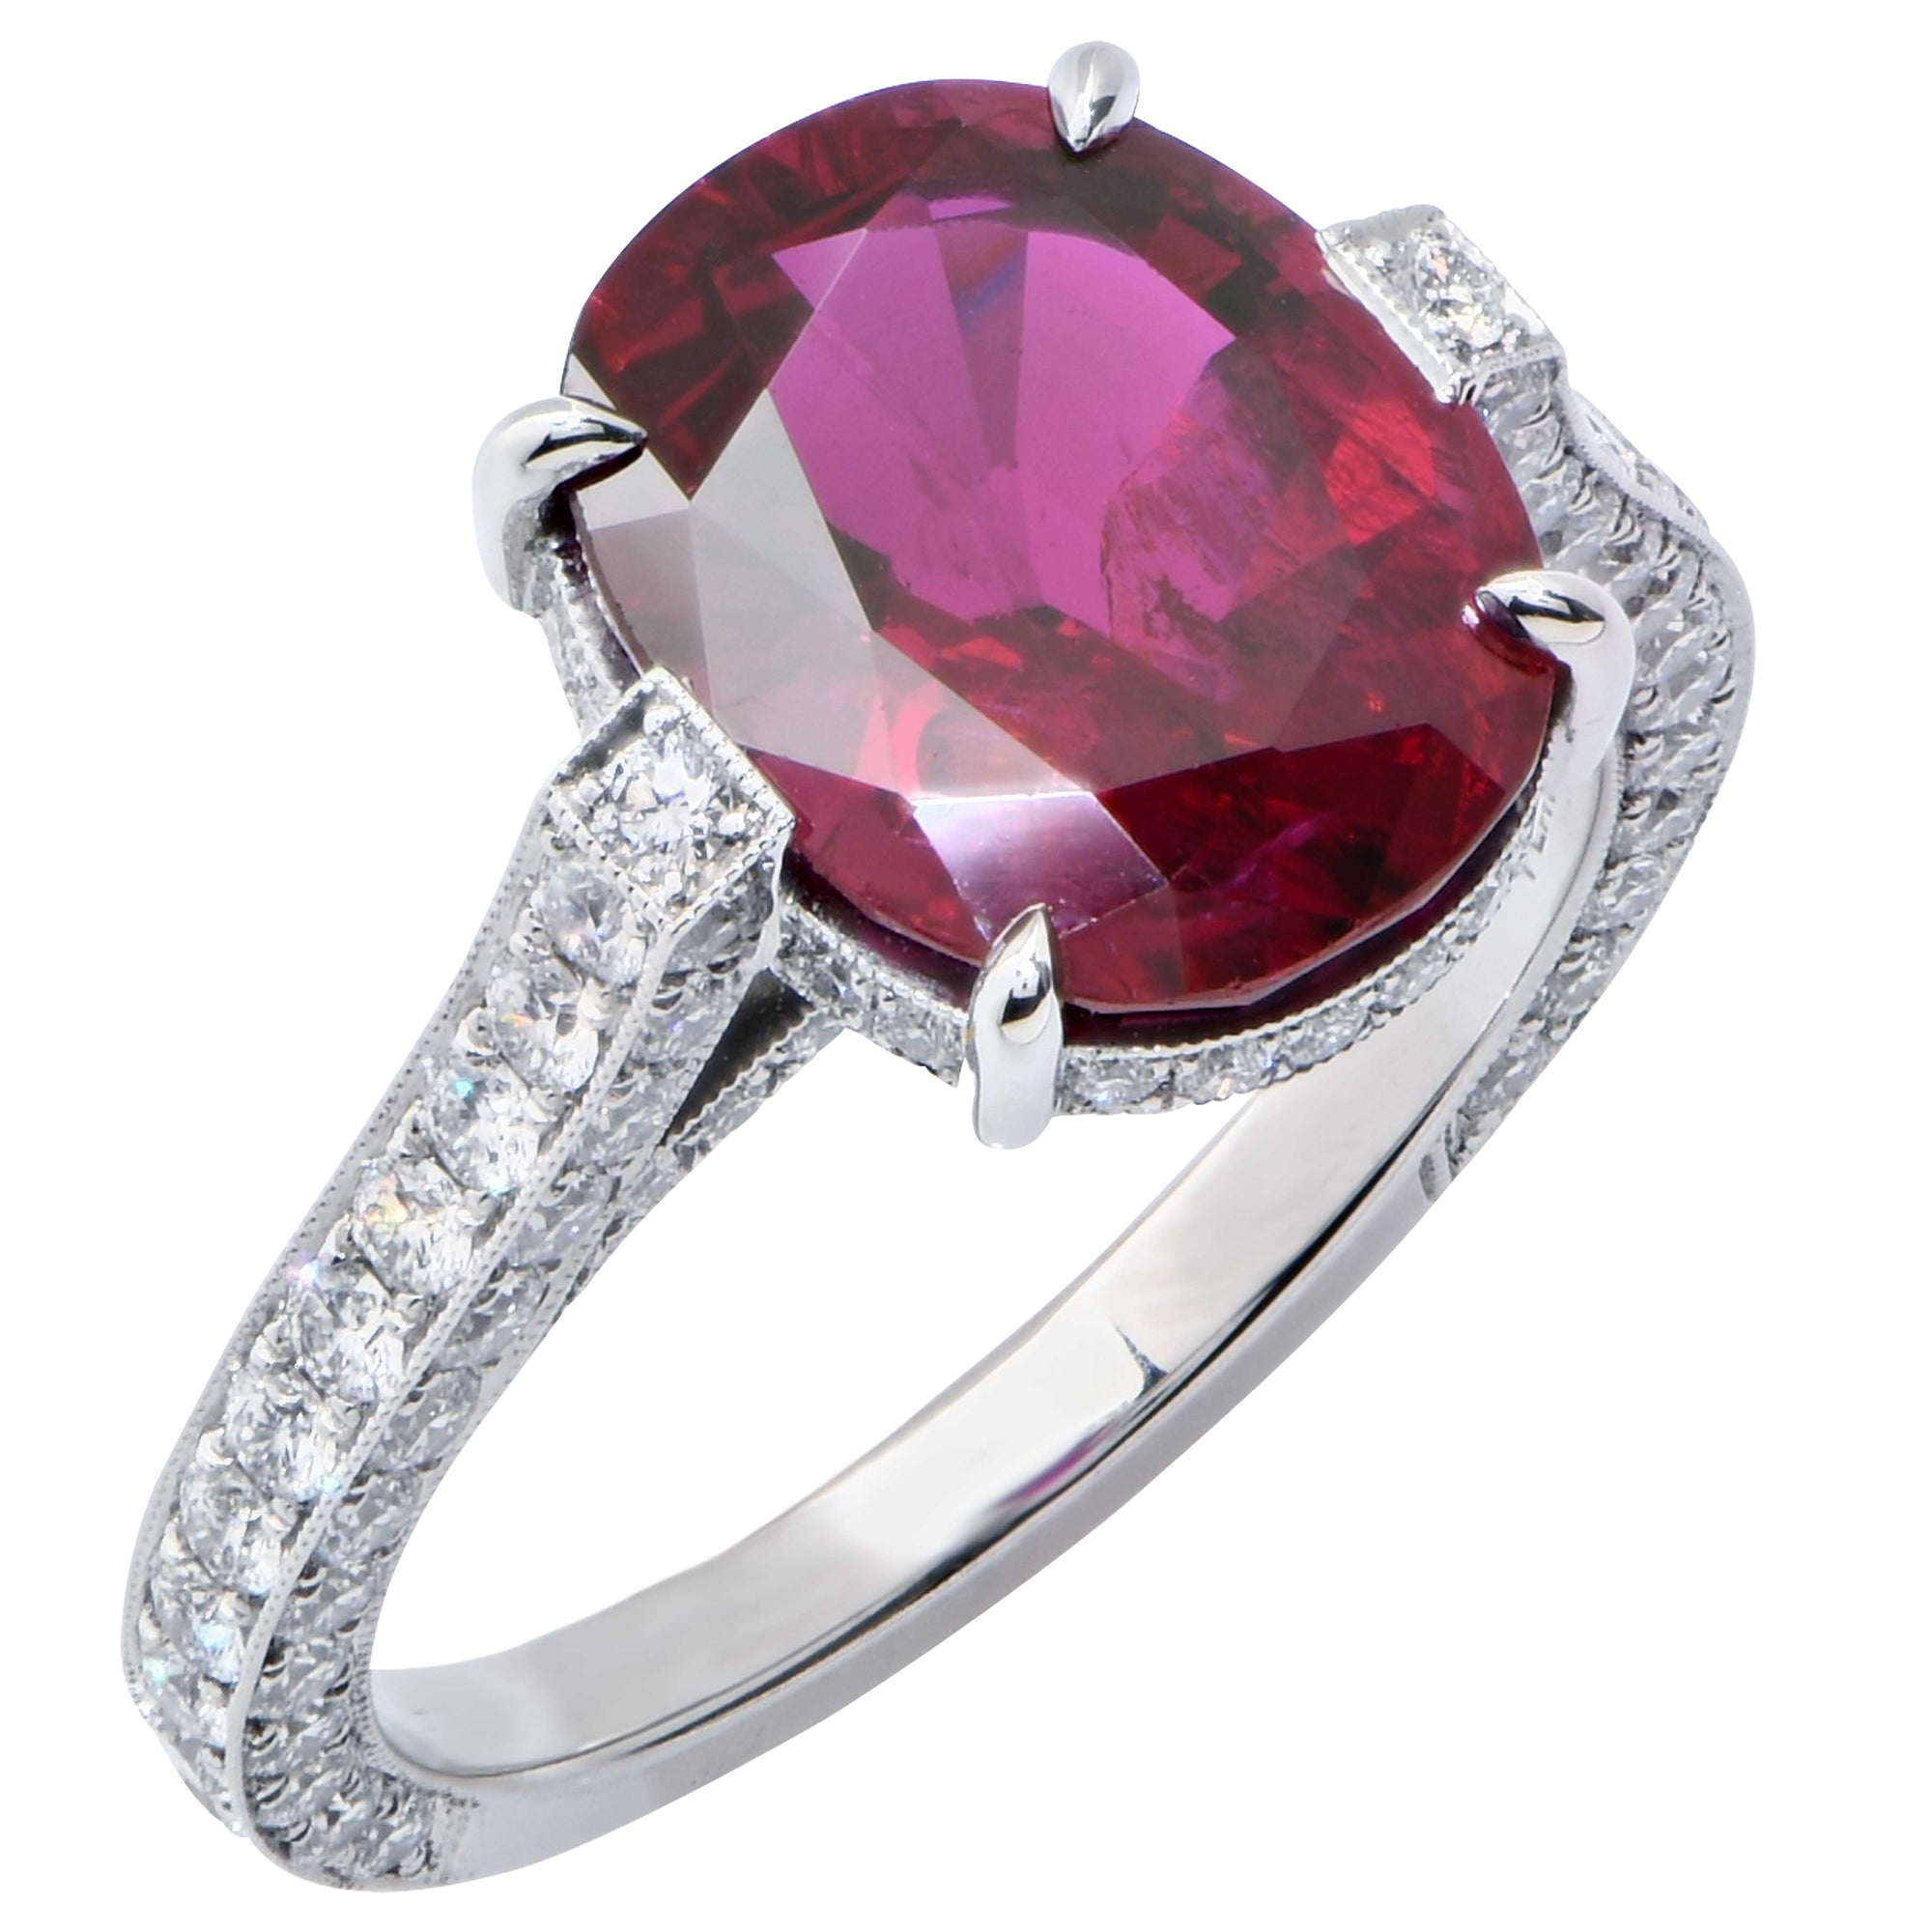 4 Carat AGL Graded No Heat Oval Ruby and Diamond Platinum Ring